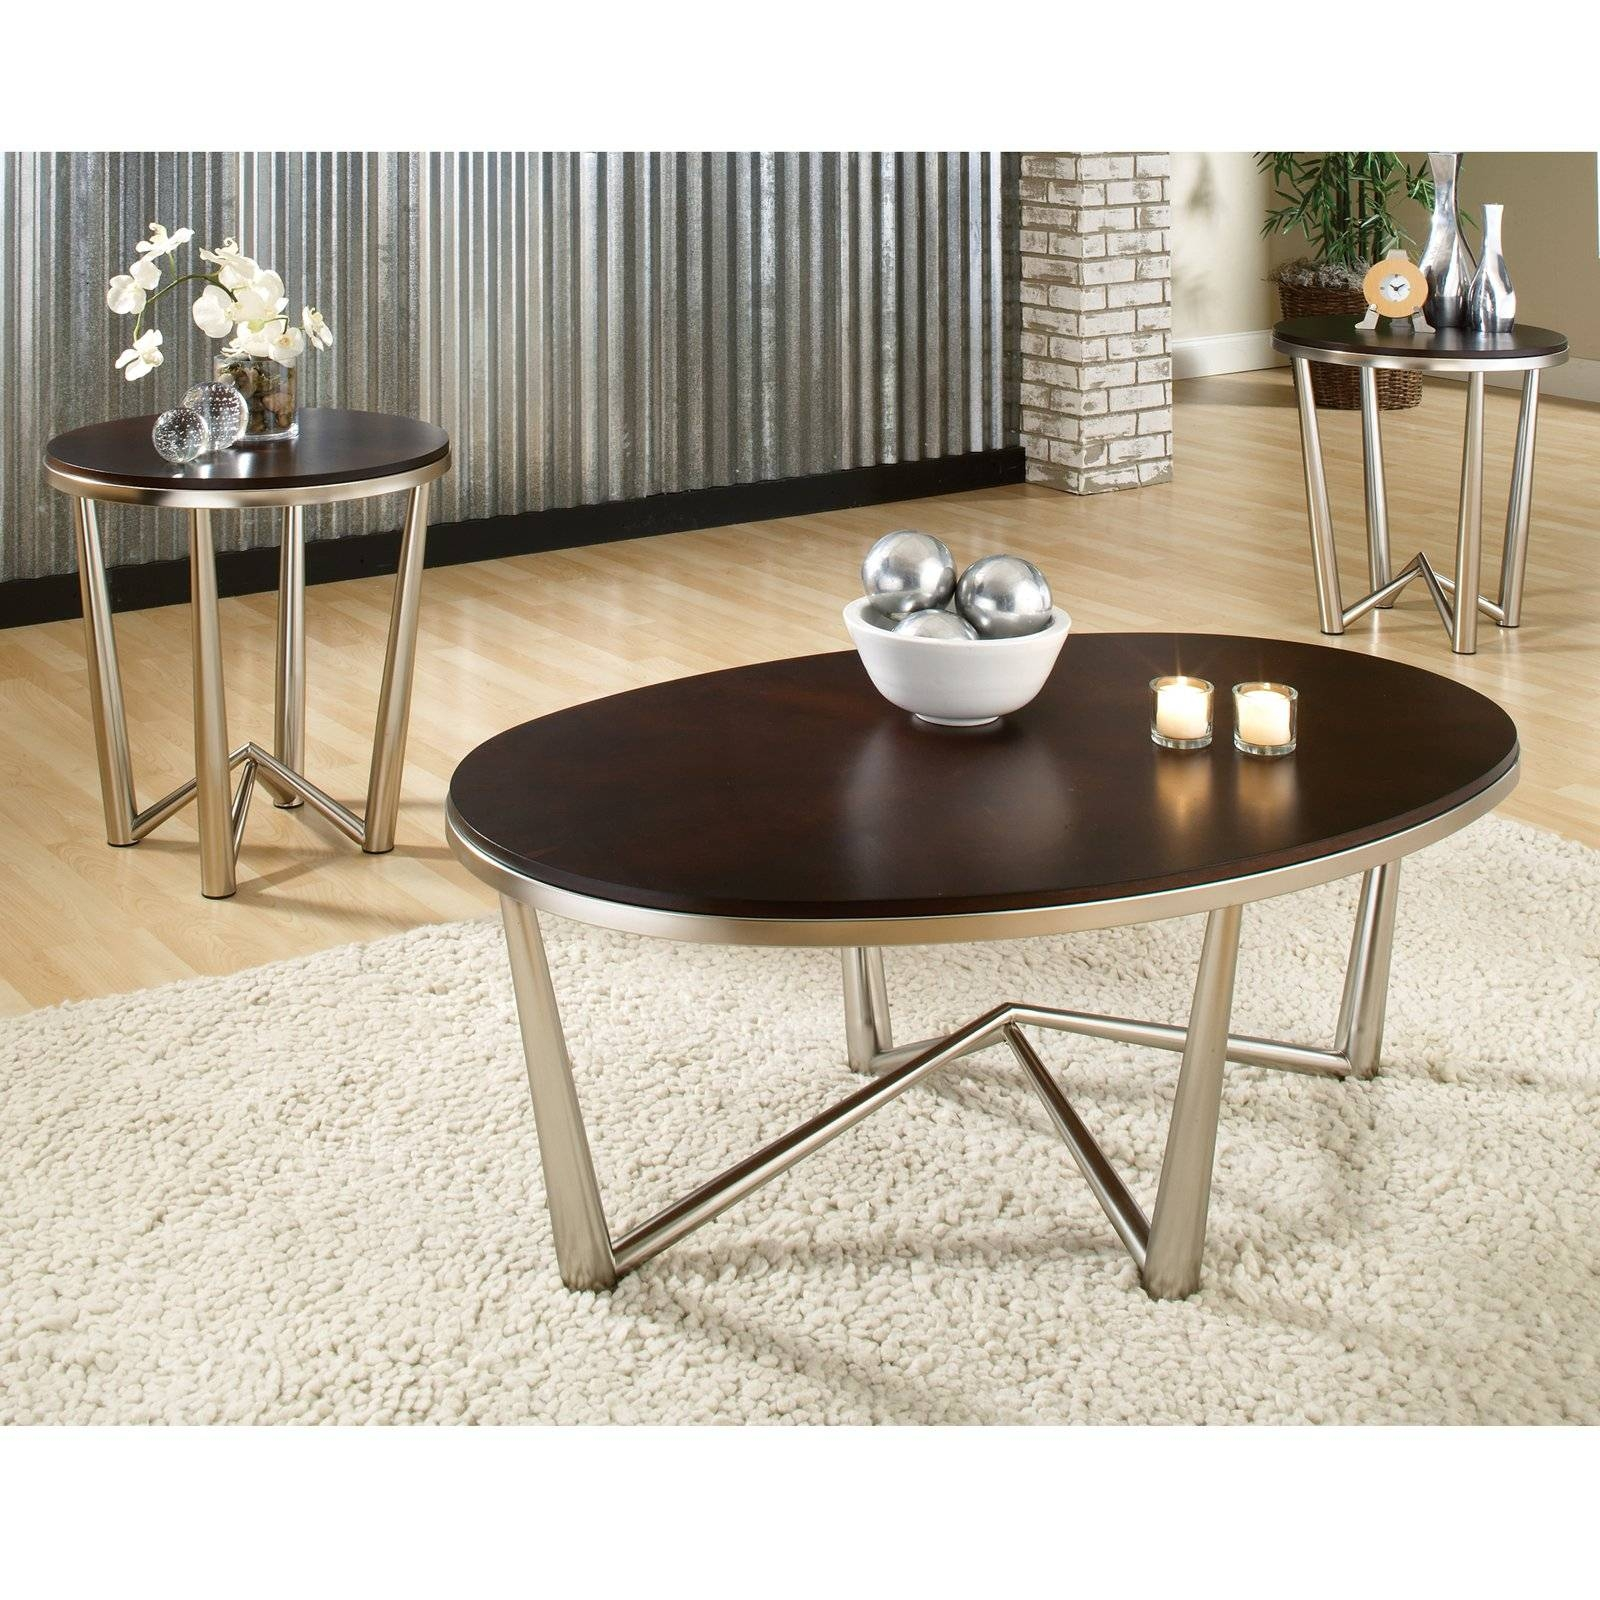 30 Best Collection of Oval Shaped Coffee Tables